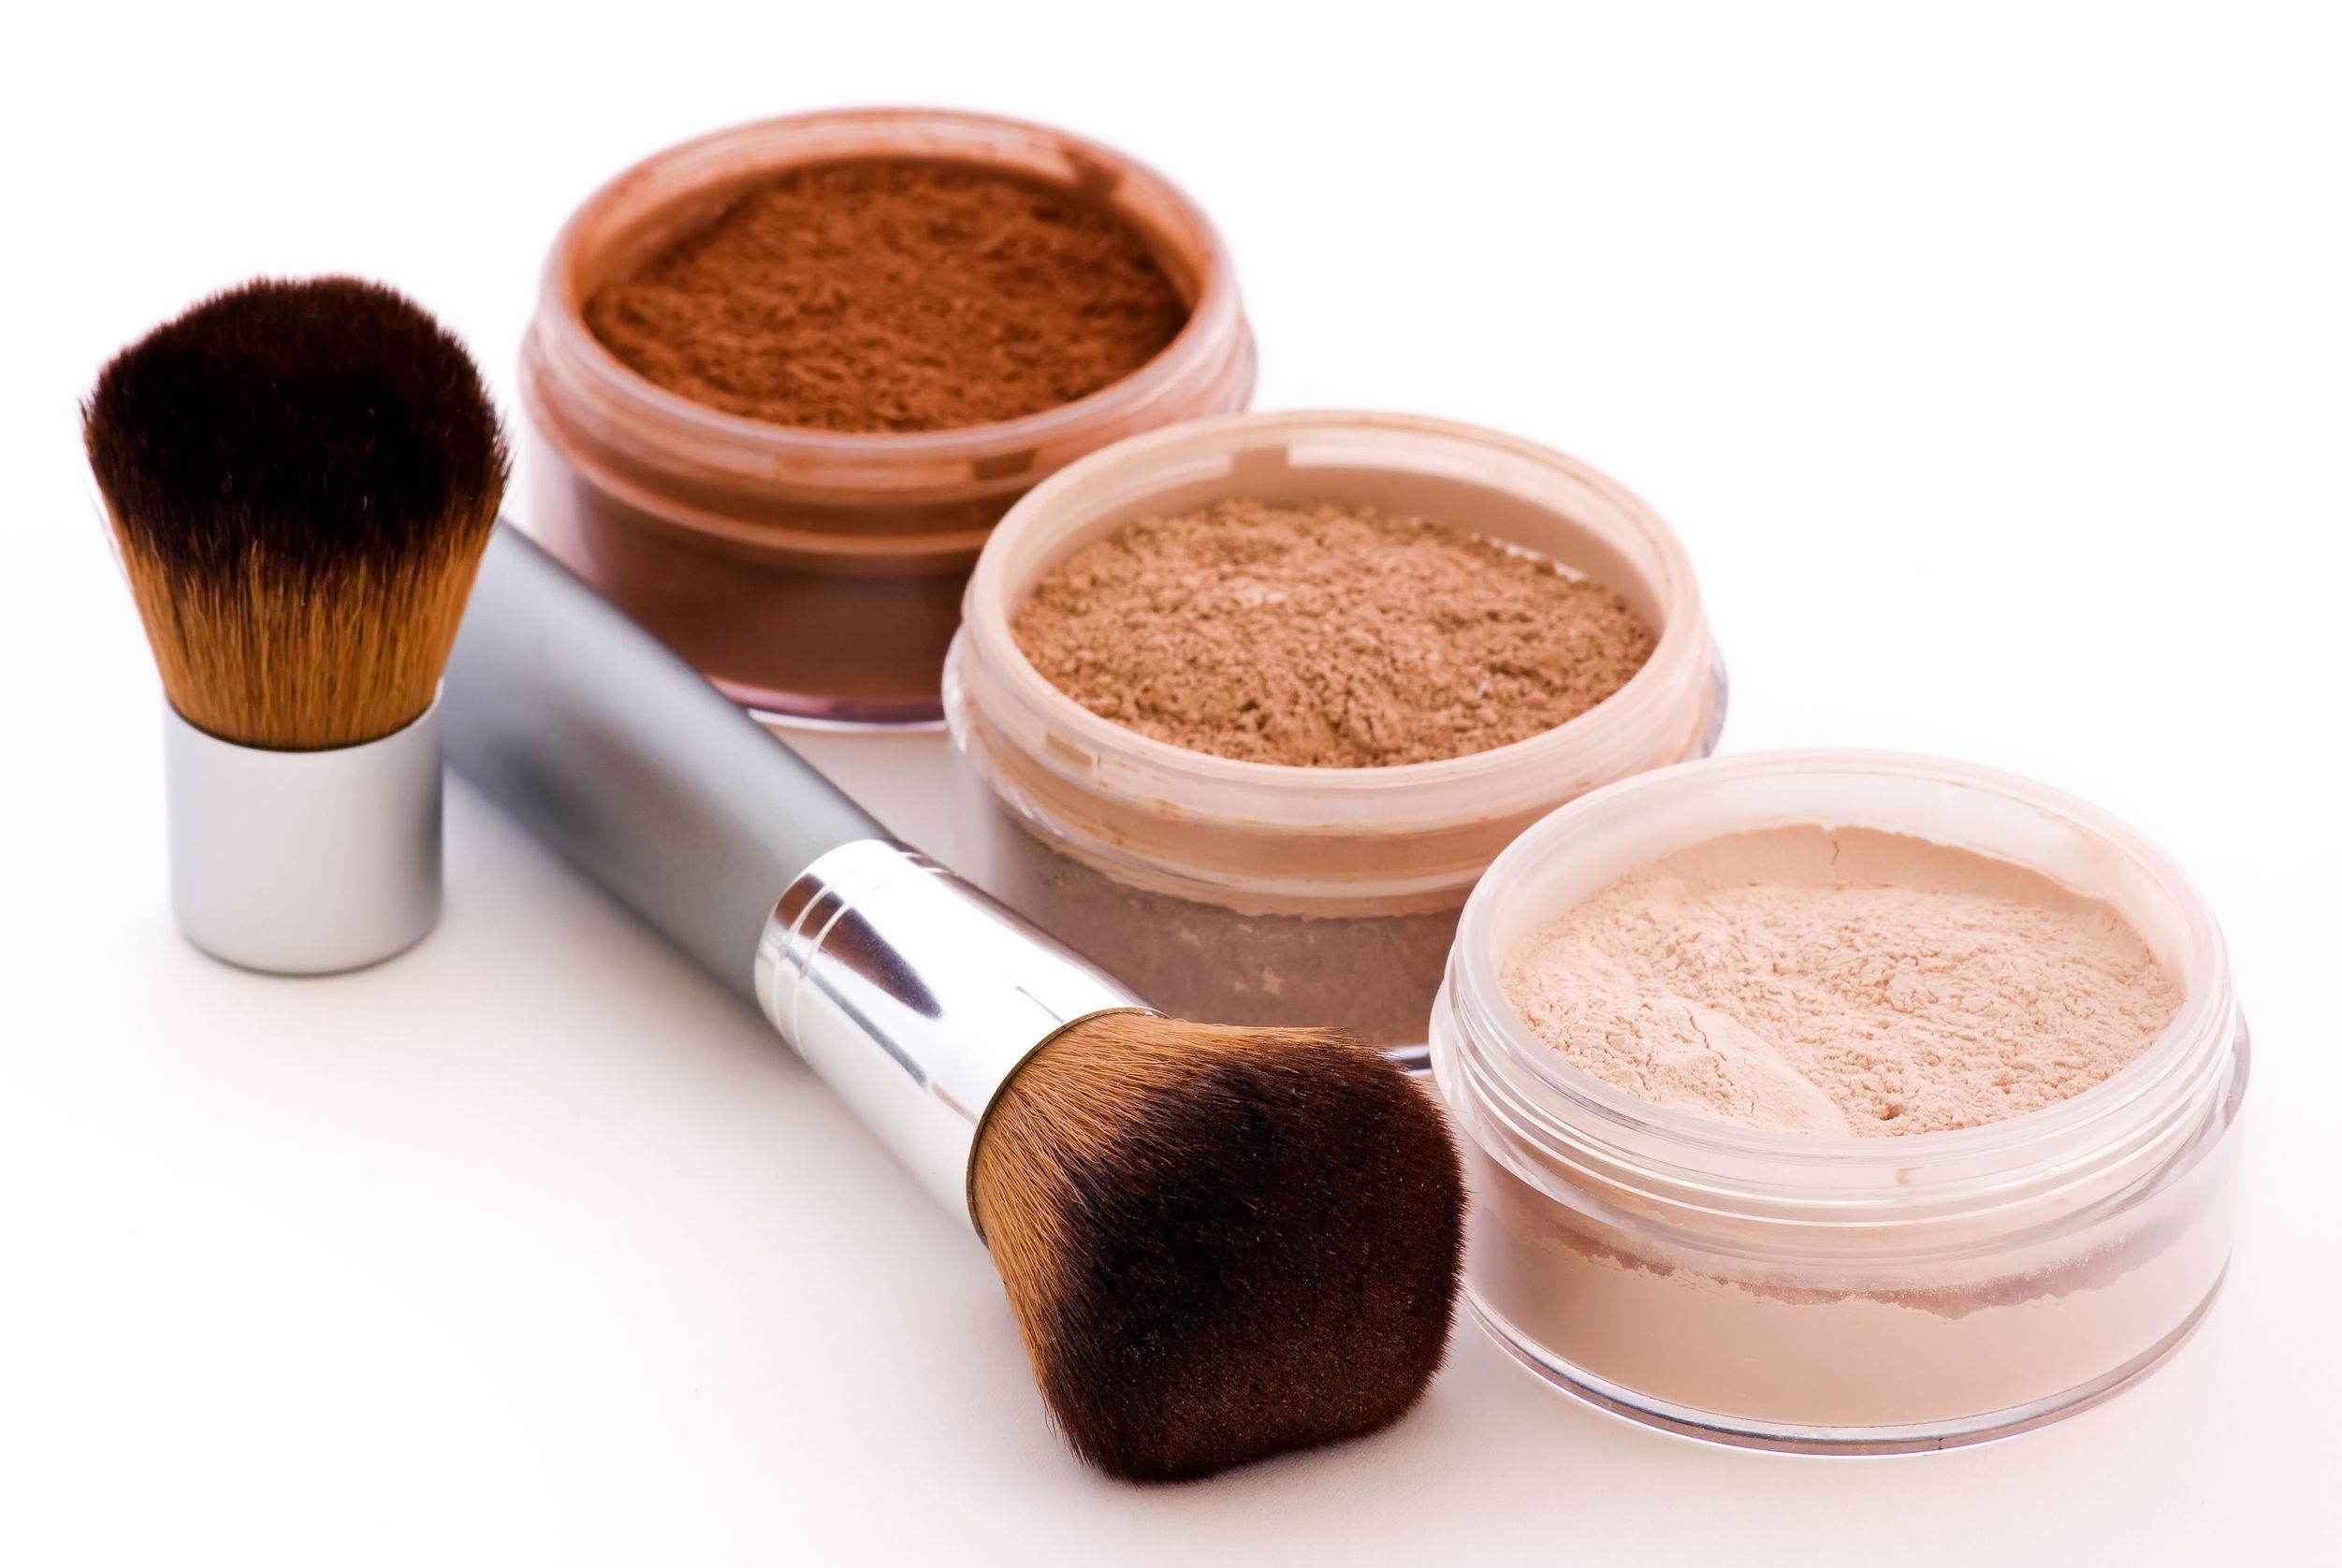 Learn how to make your own makeup at the Aroma Shoppe